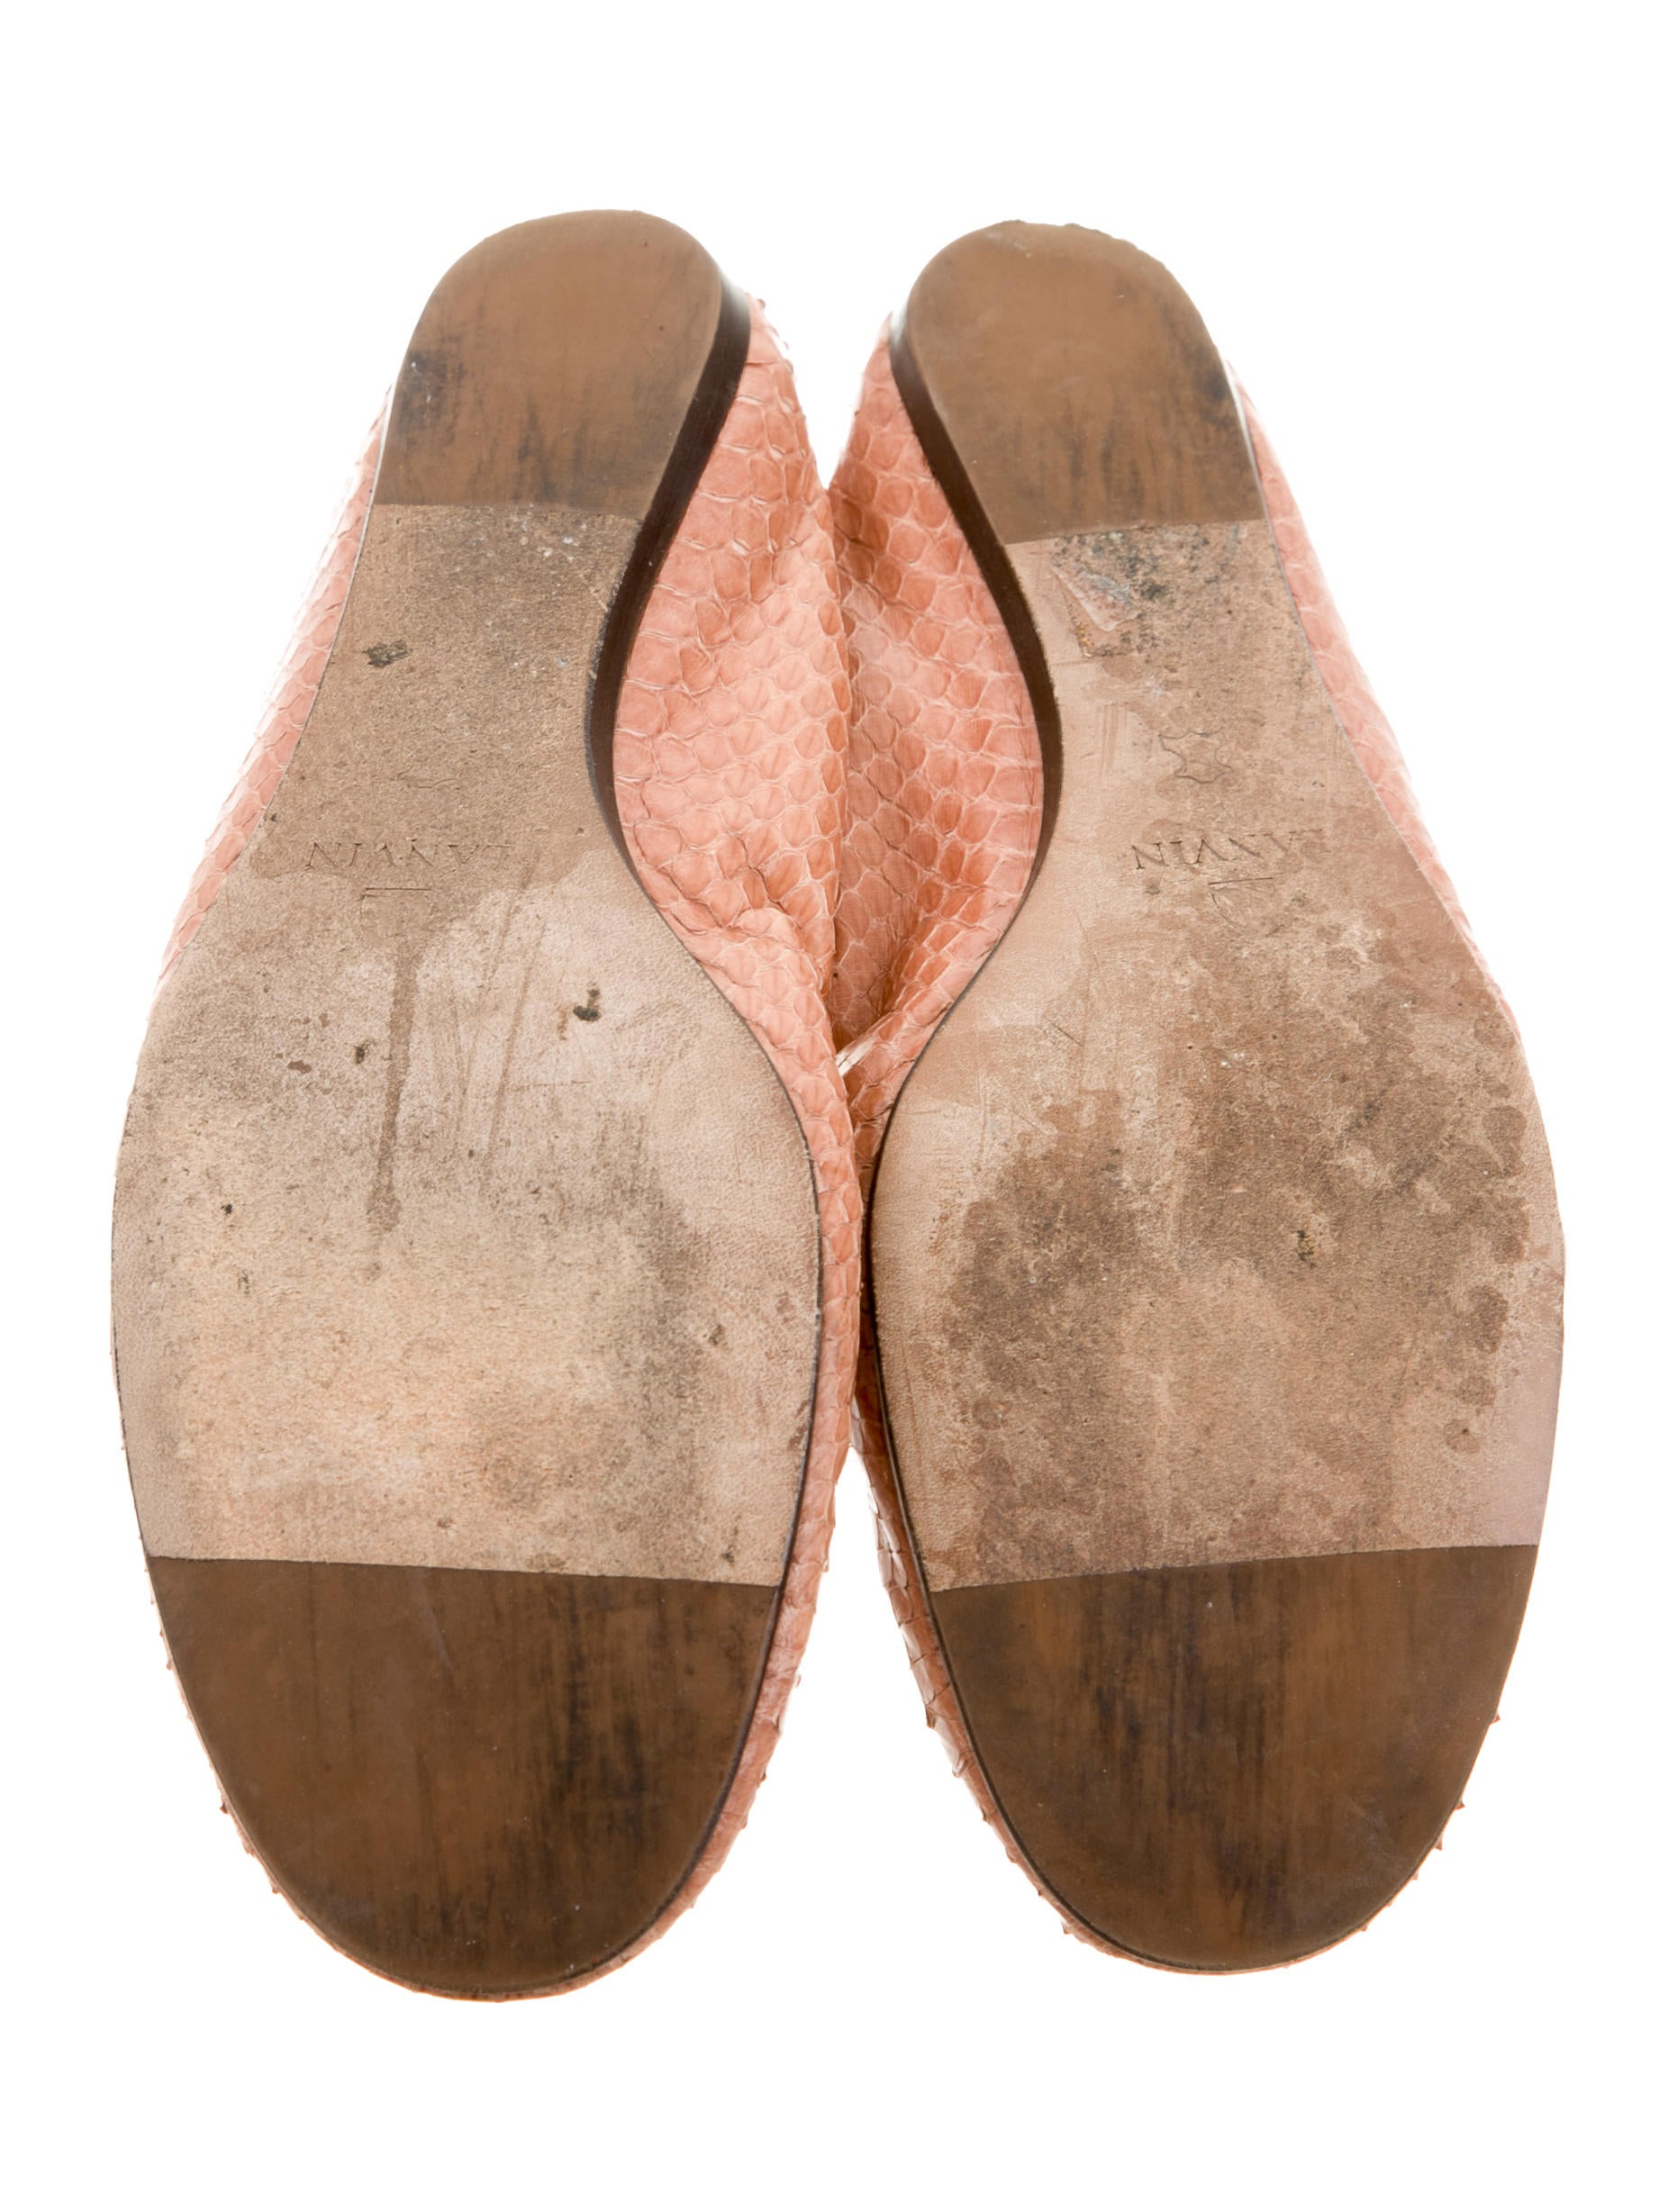 Find grey snakeskin flats at ShopStyle. Shop the latest collection of grey snakeskin flats from the most popular stores - all in one place.